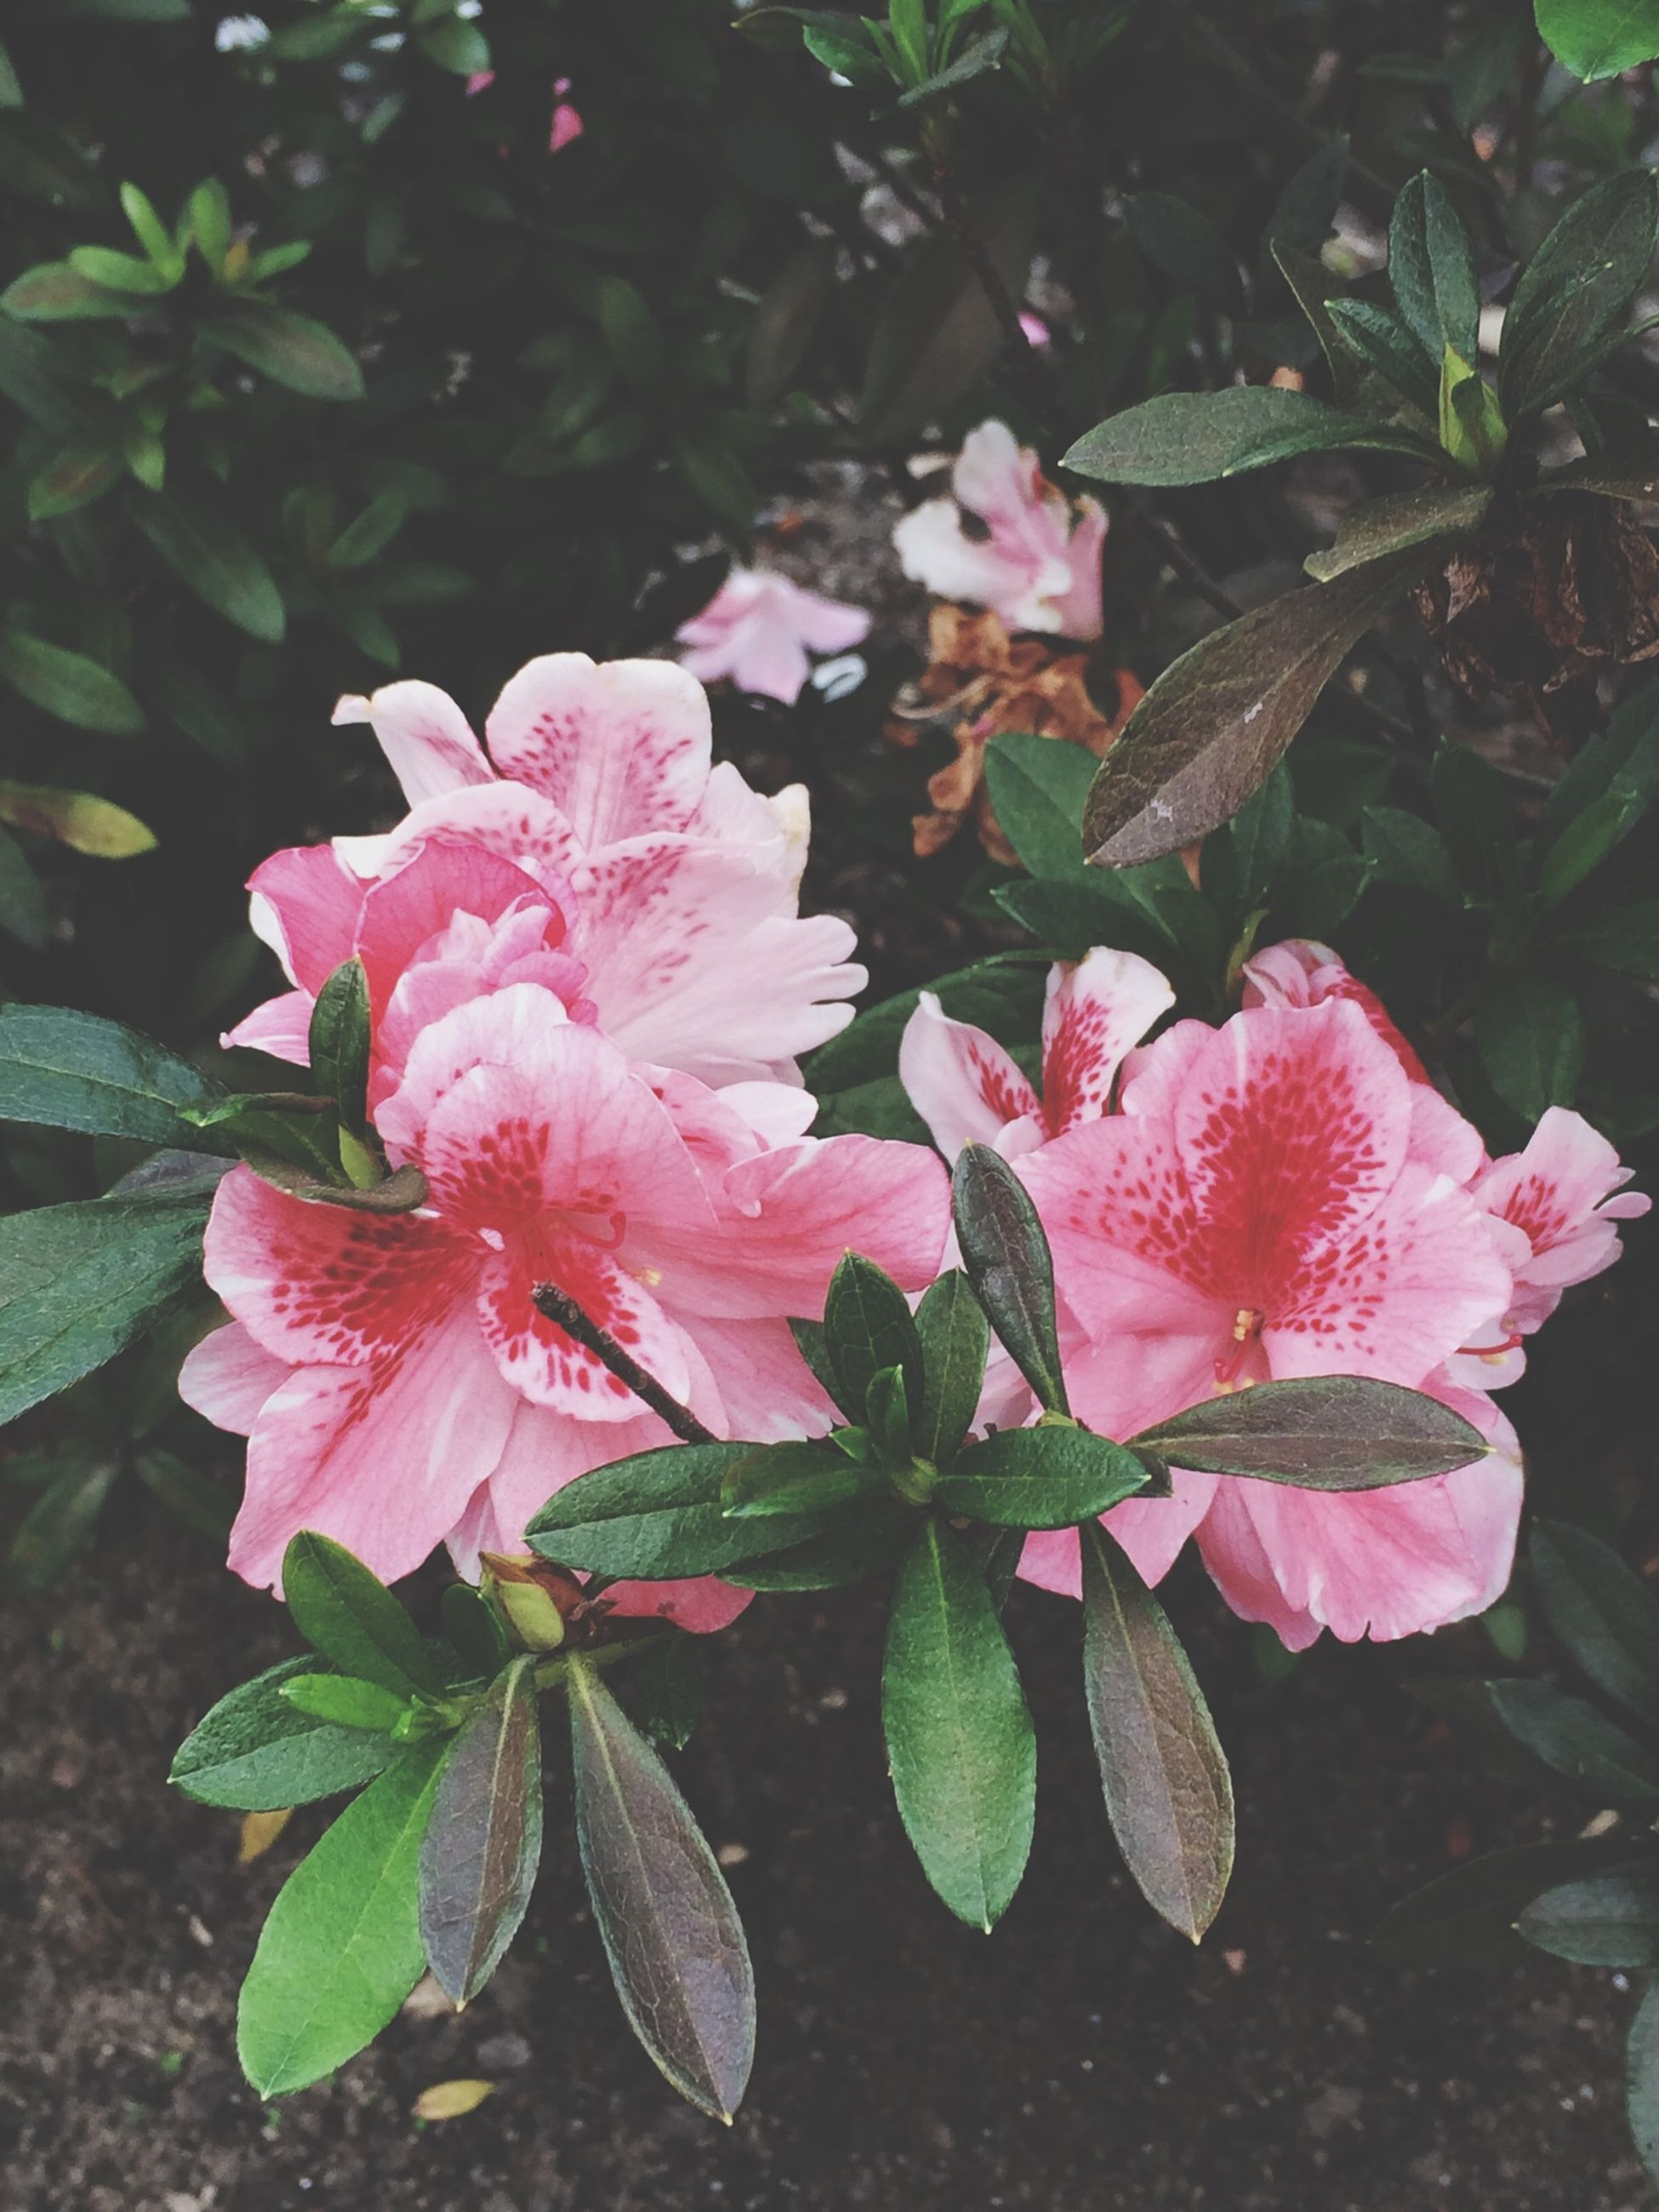 flower, freshness, pink color, petal, fragility, growth, leaf, flower head, beauty in nature, plant, nature, close-up, blooming, high angle view, pink, in bloom, outdoors, day, no people, park - man made space